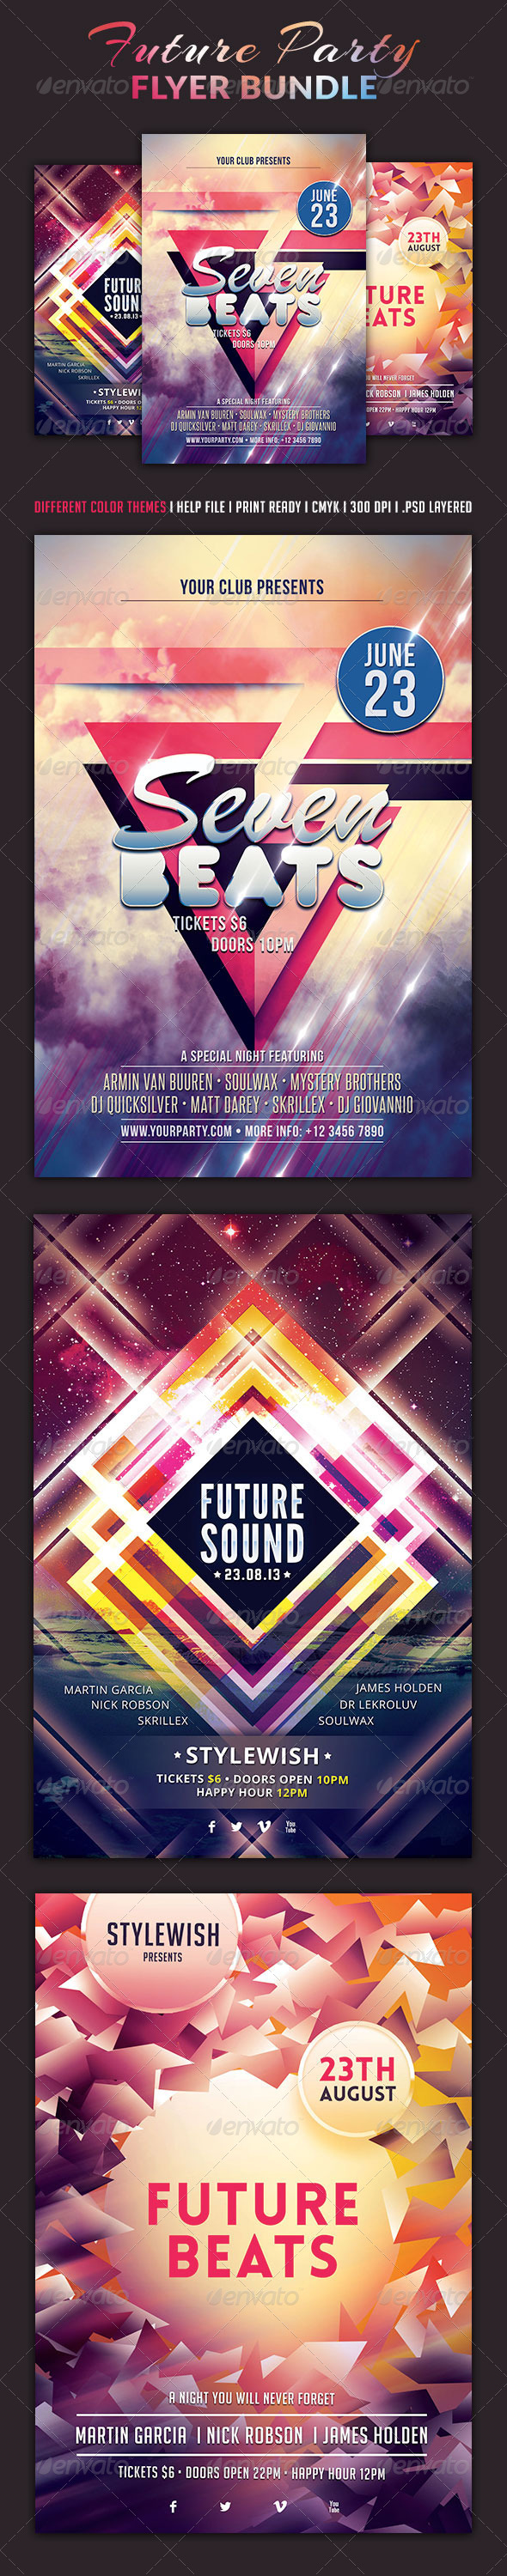 Future Party Flyer Bundle - Clubs & Parties Events